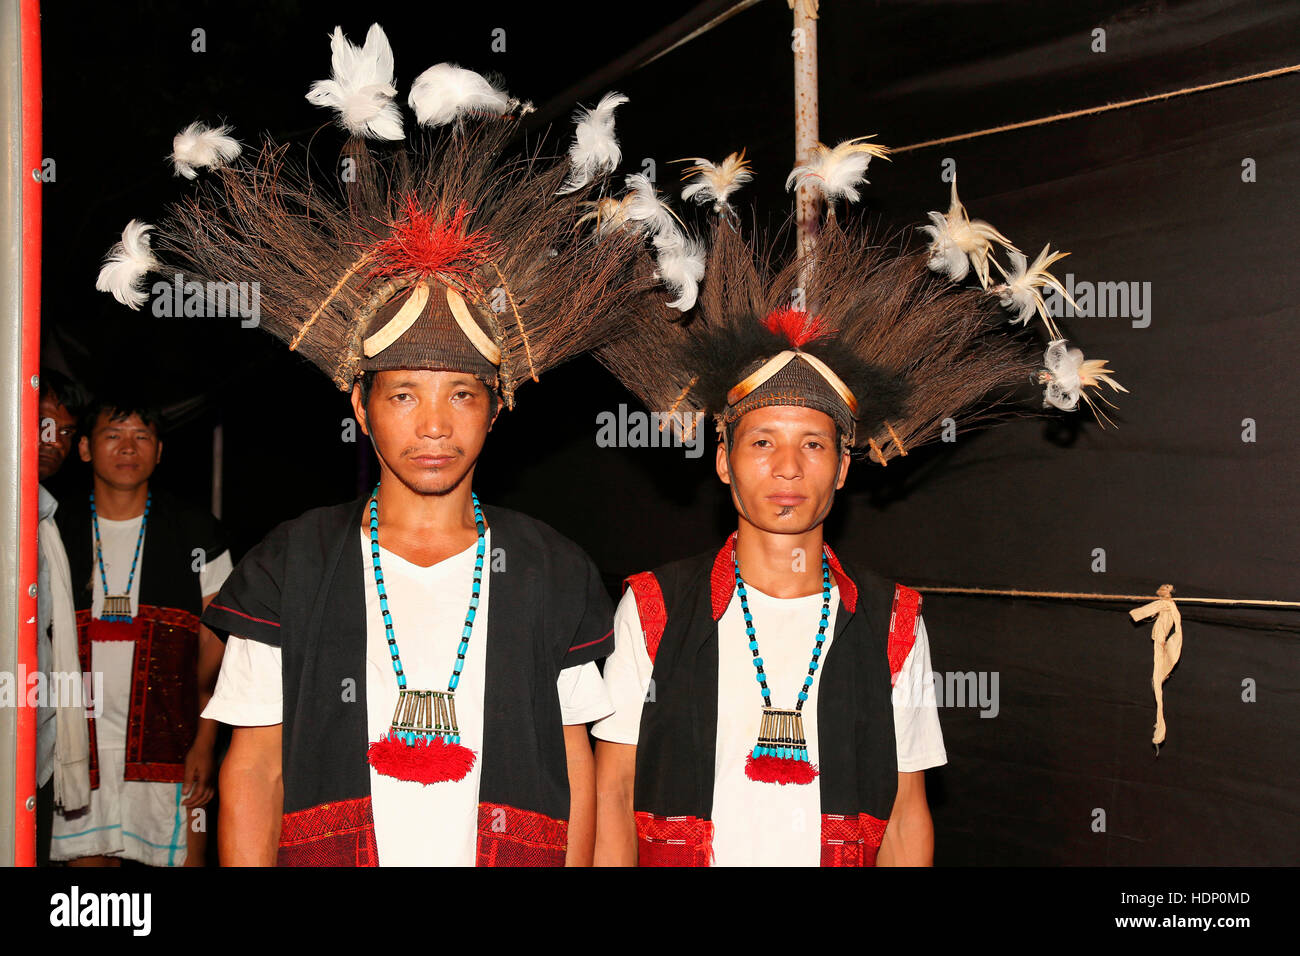 Adi Tribal Men with Traditional Headgear from Arunachal Pradesh India. Tribal Festival in Ajmer, Rajasthan, India - Stock Image